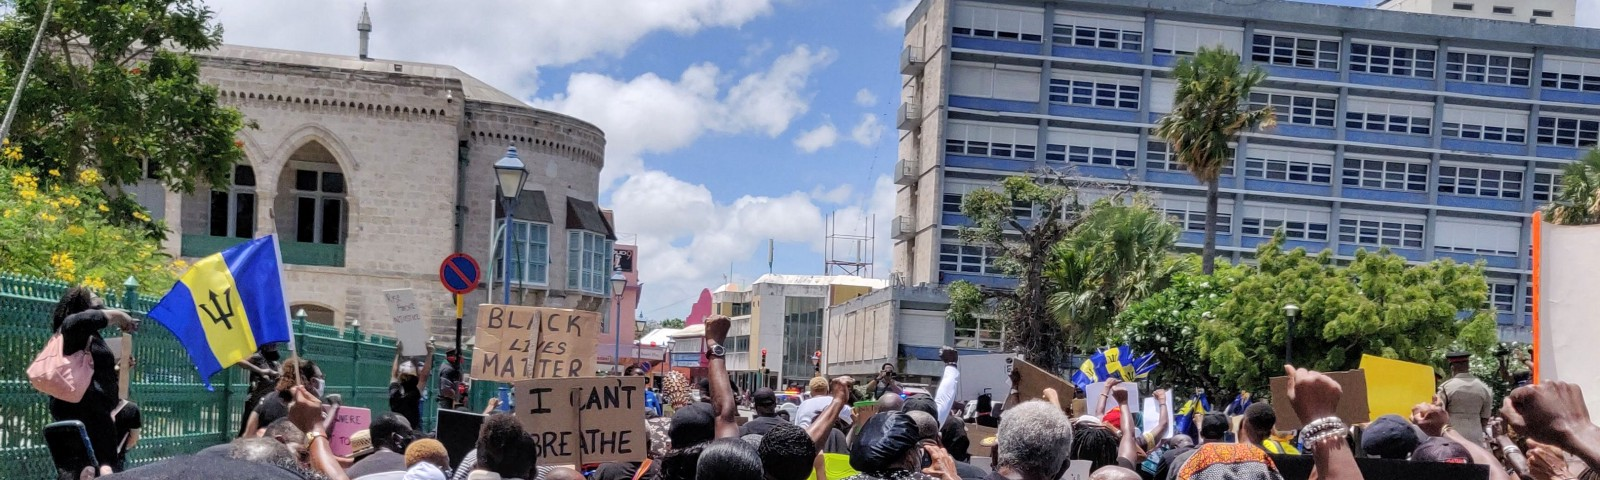 Black Lives Matter protest in Bridgetown, Barbados (photo by Sharon Hurley Hall) — shows people kneeling near to the Parliament building